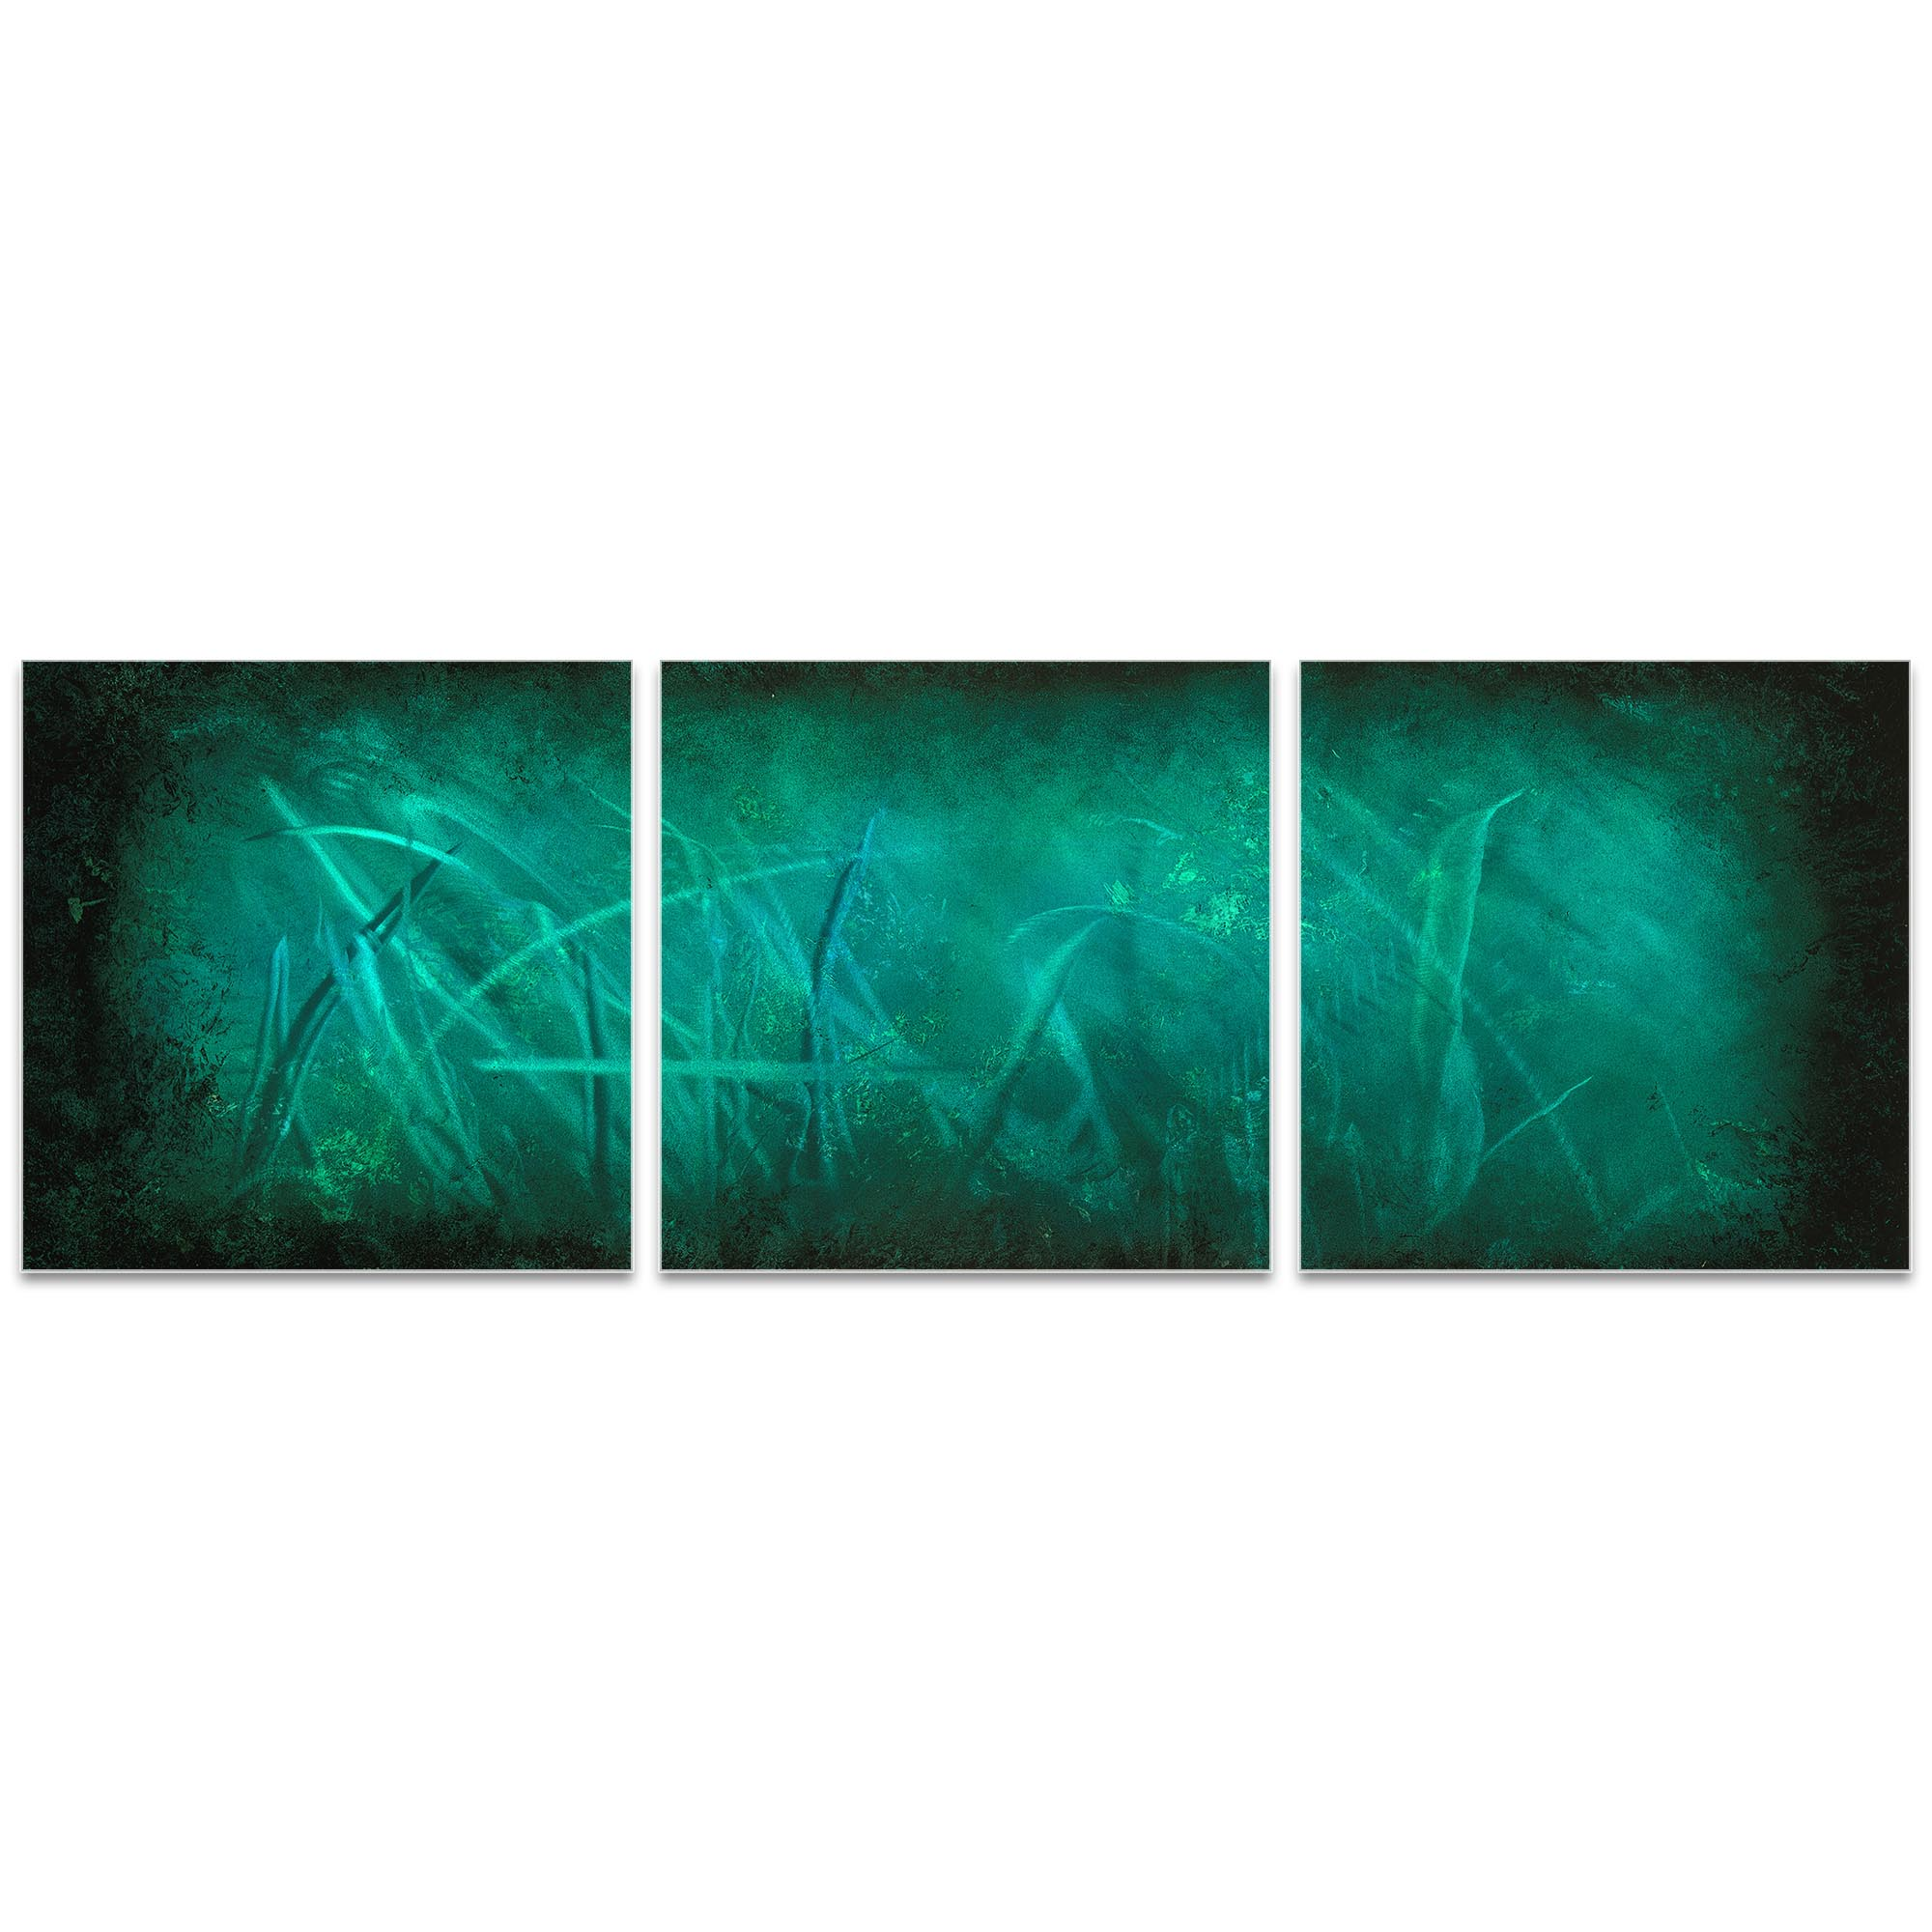 Ocean Mist Triptych Large 70x22in. Metal or Acrylic Abstract Decor - Image 2